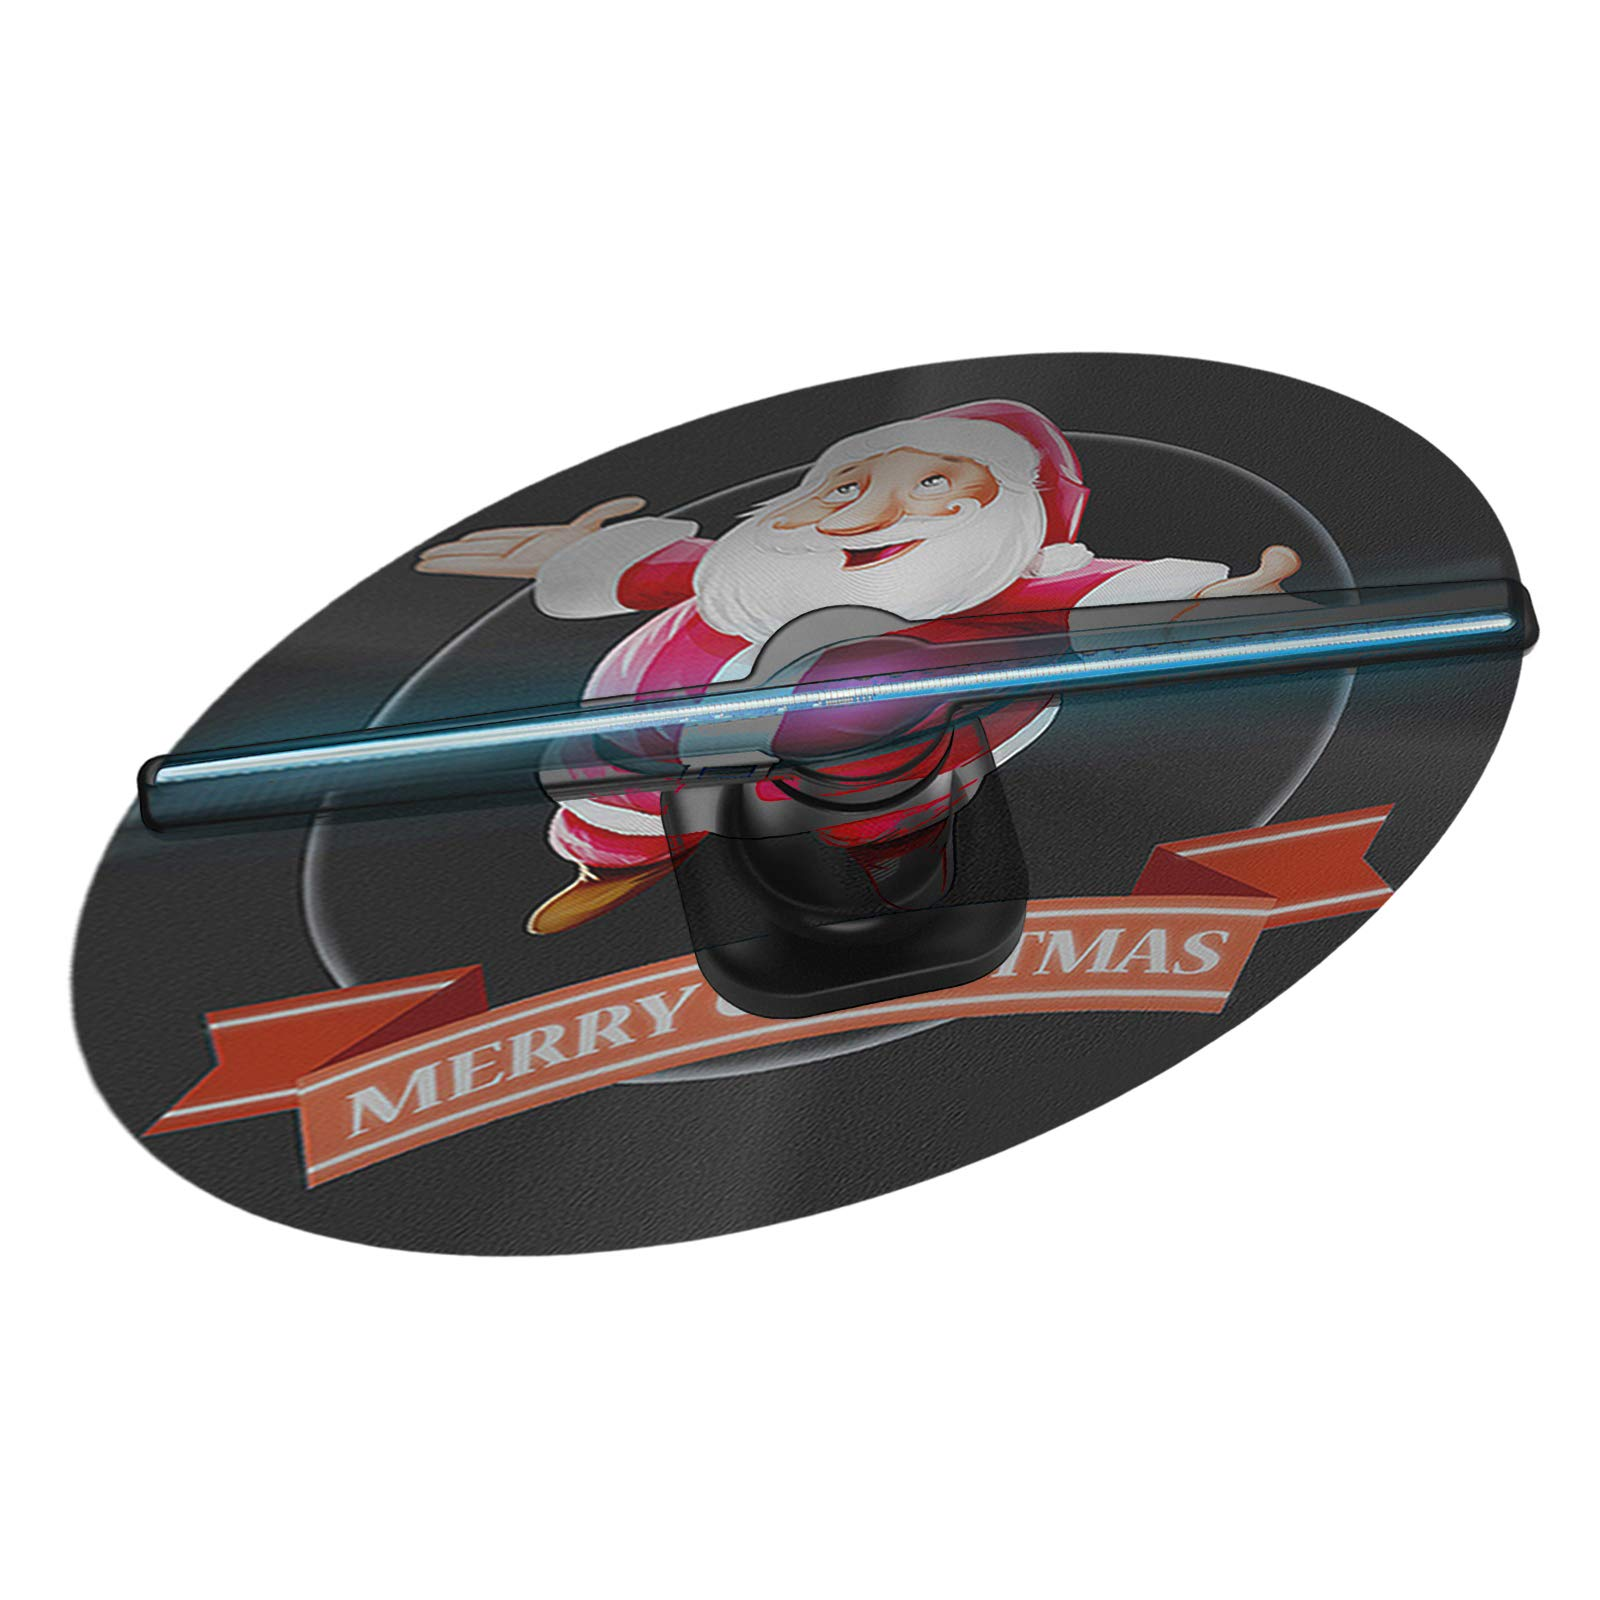 3D Hologram Fan Advertising LED Fan 450p HD Wi-Fi 3D Holographic Store Sign for Shopping Mall Restaurants Bar Holiday Events Display etc